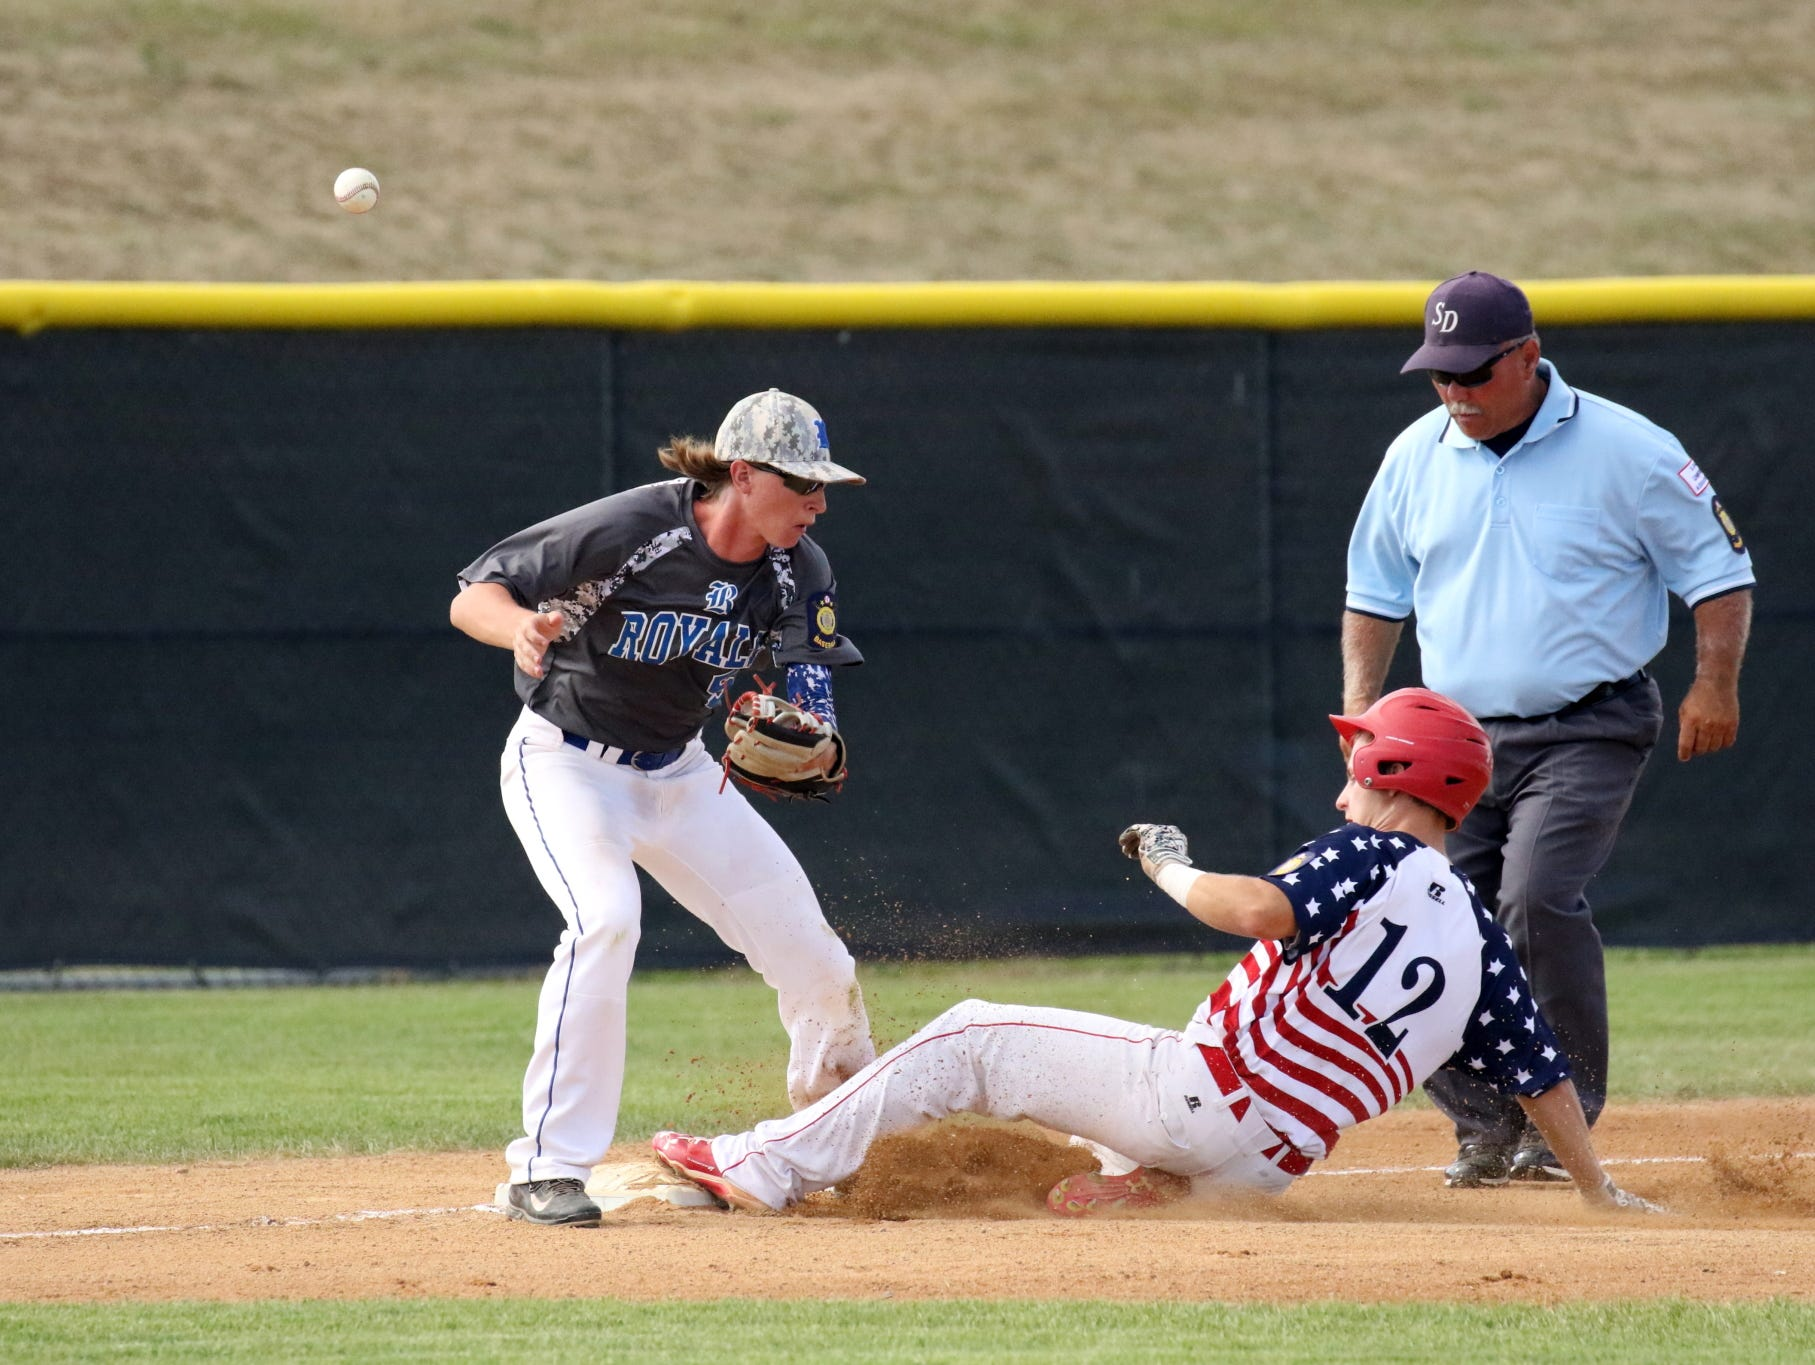 Drake Messinger of Rapid City Post 22 slides into third as the ball gets past Trevor Schaller of Renner 307 during Sunday's Championship game in Sioux Falls.